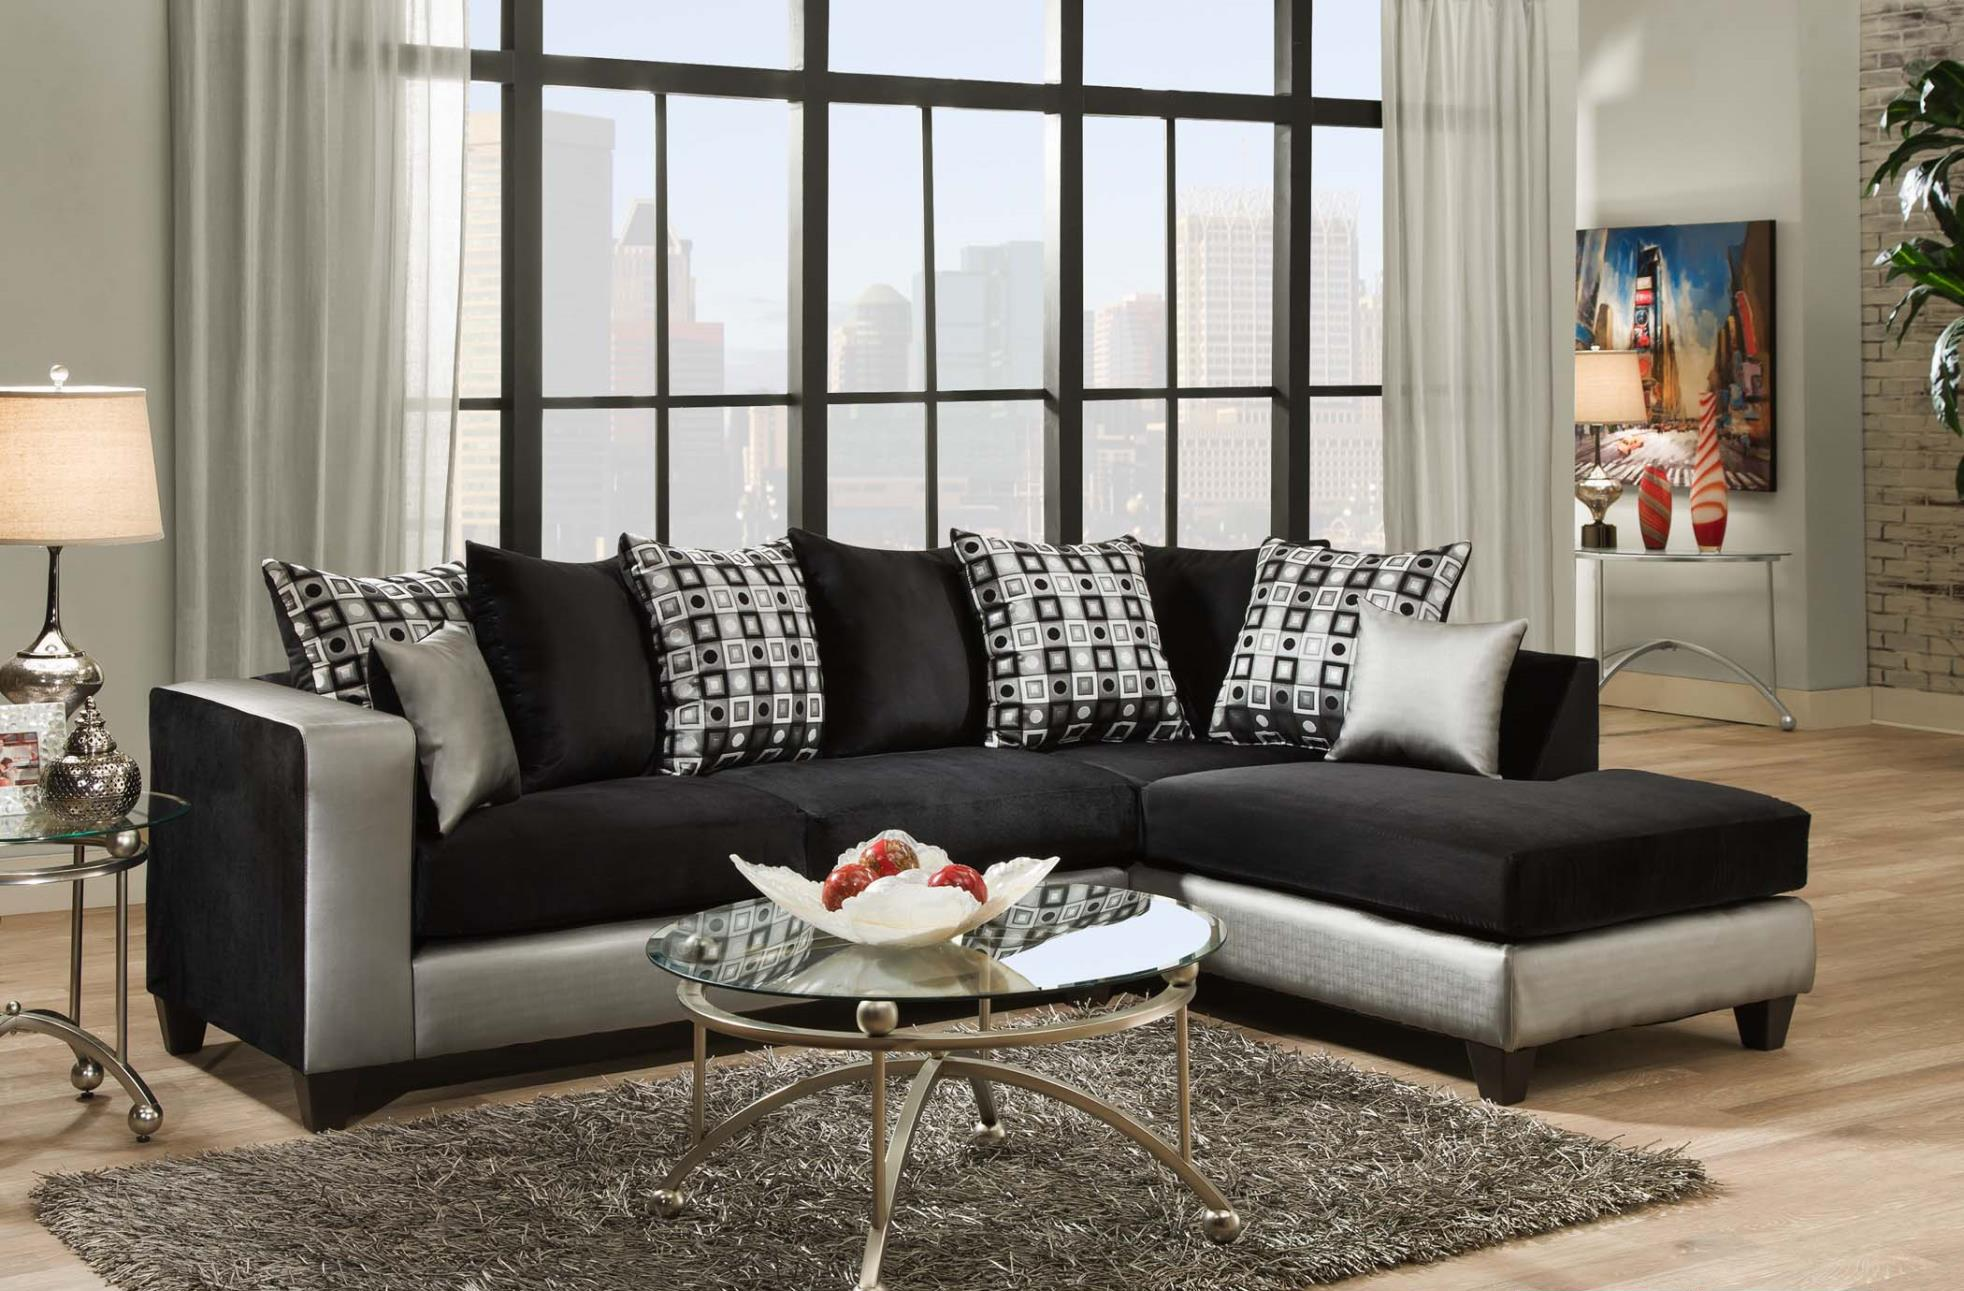 Sectional sofas in phoenix az sectional sofas phoenix for Furniture 85050